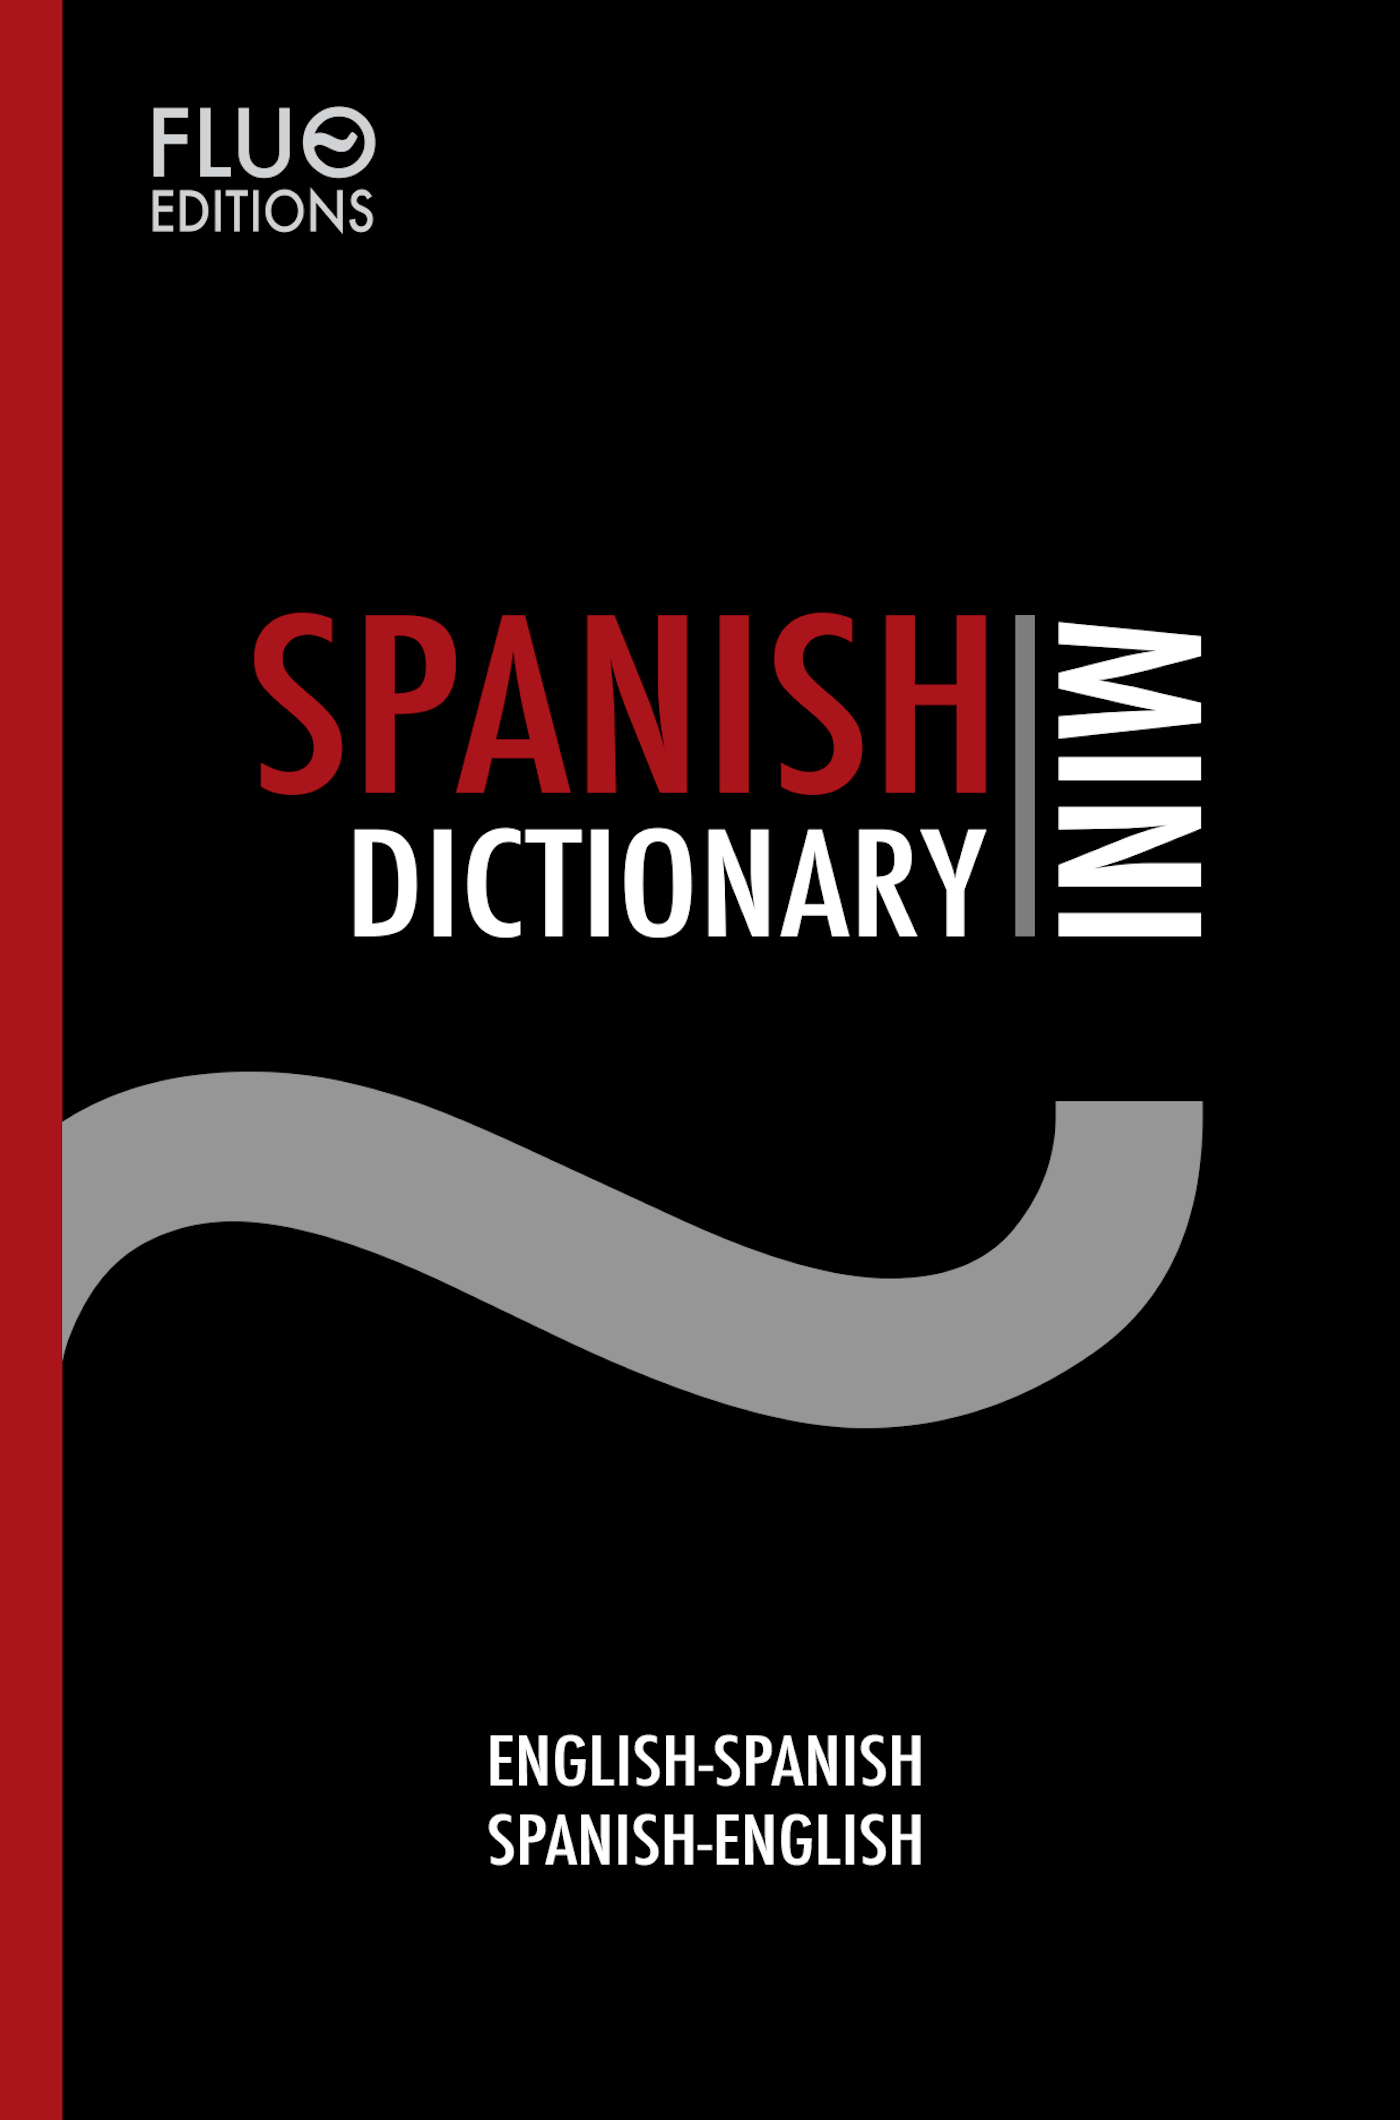 How to Set Up a Kindle Dictionary